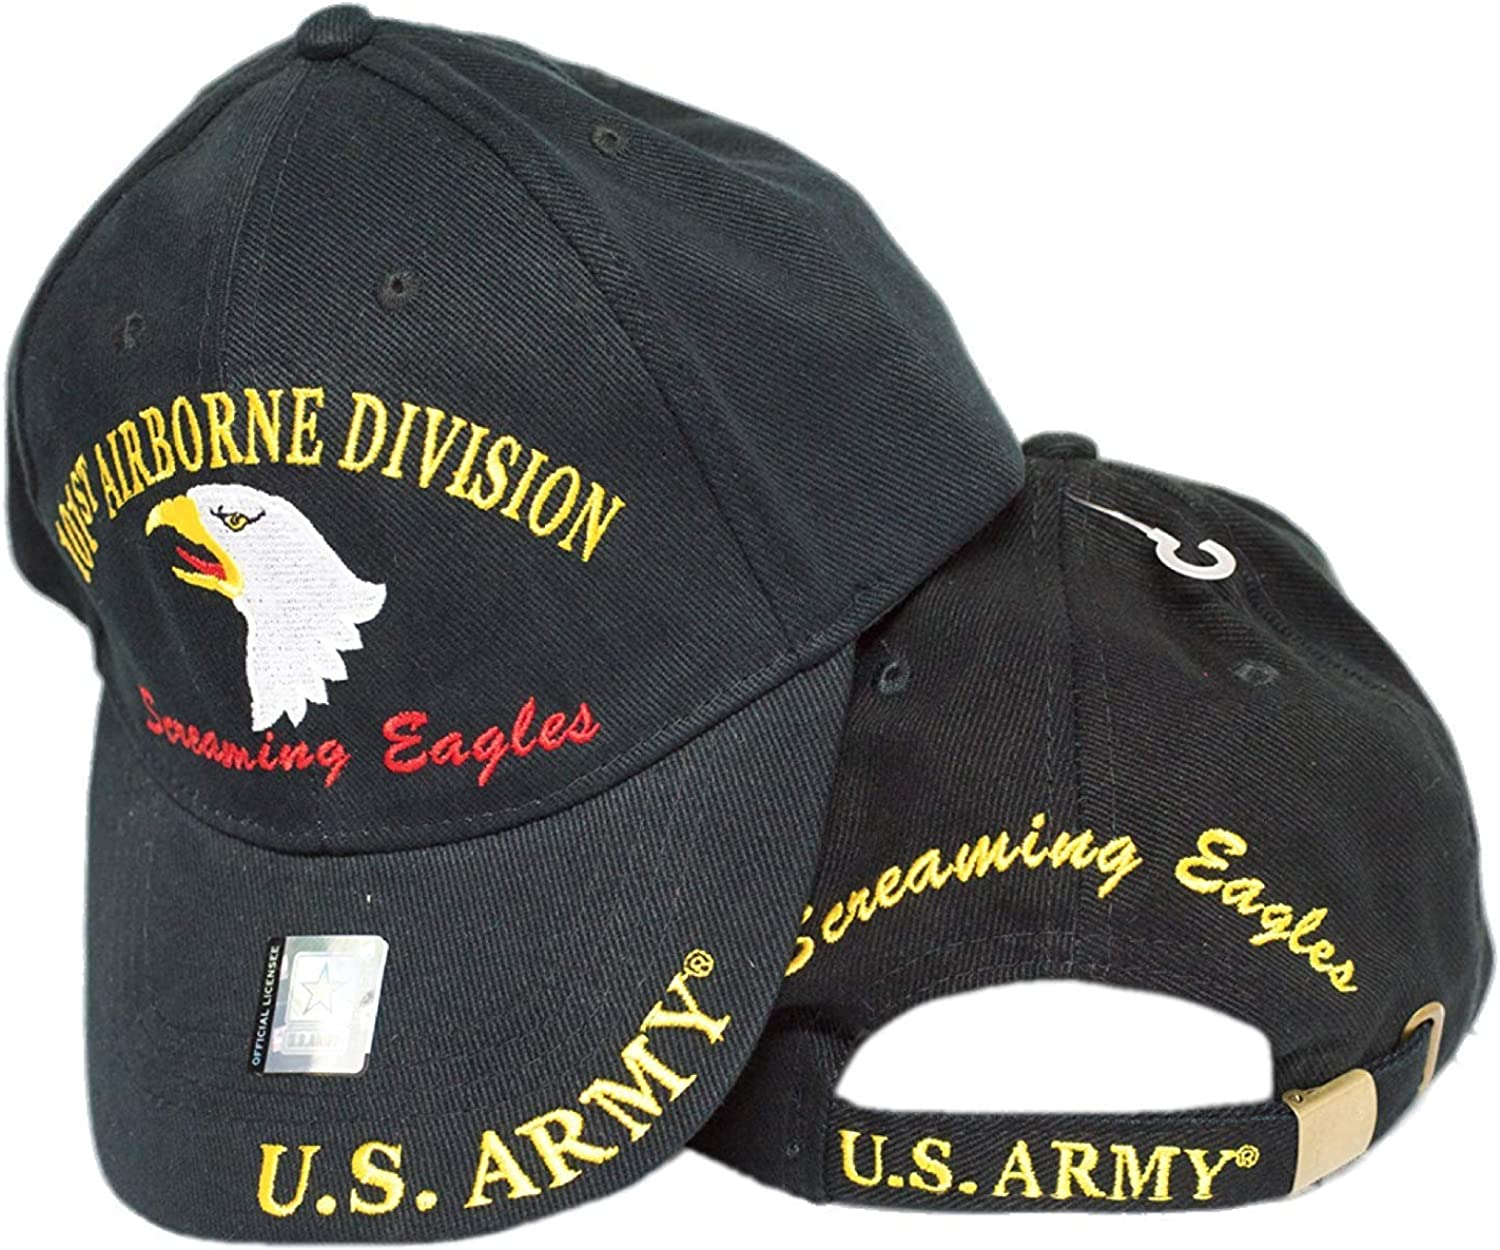 Army 101st Airborne Military Hat Baseball Cap Officially Licensed U.S